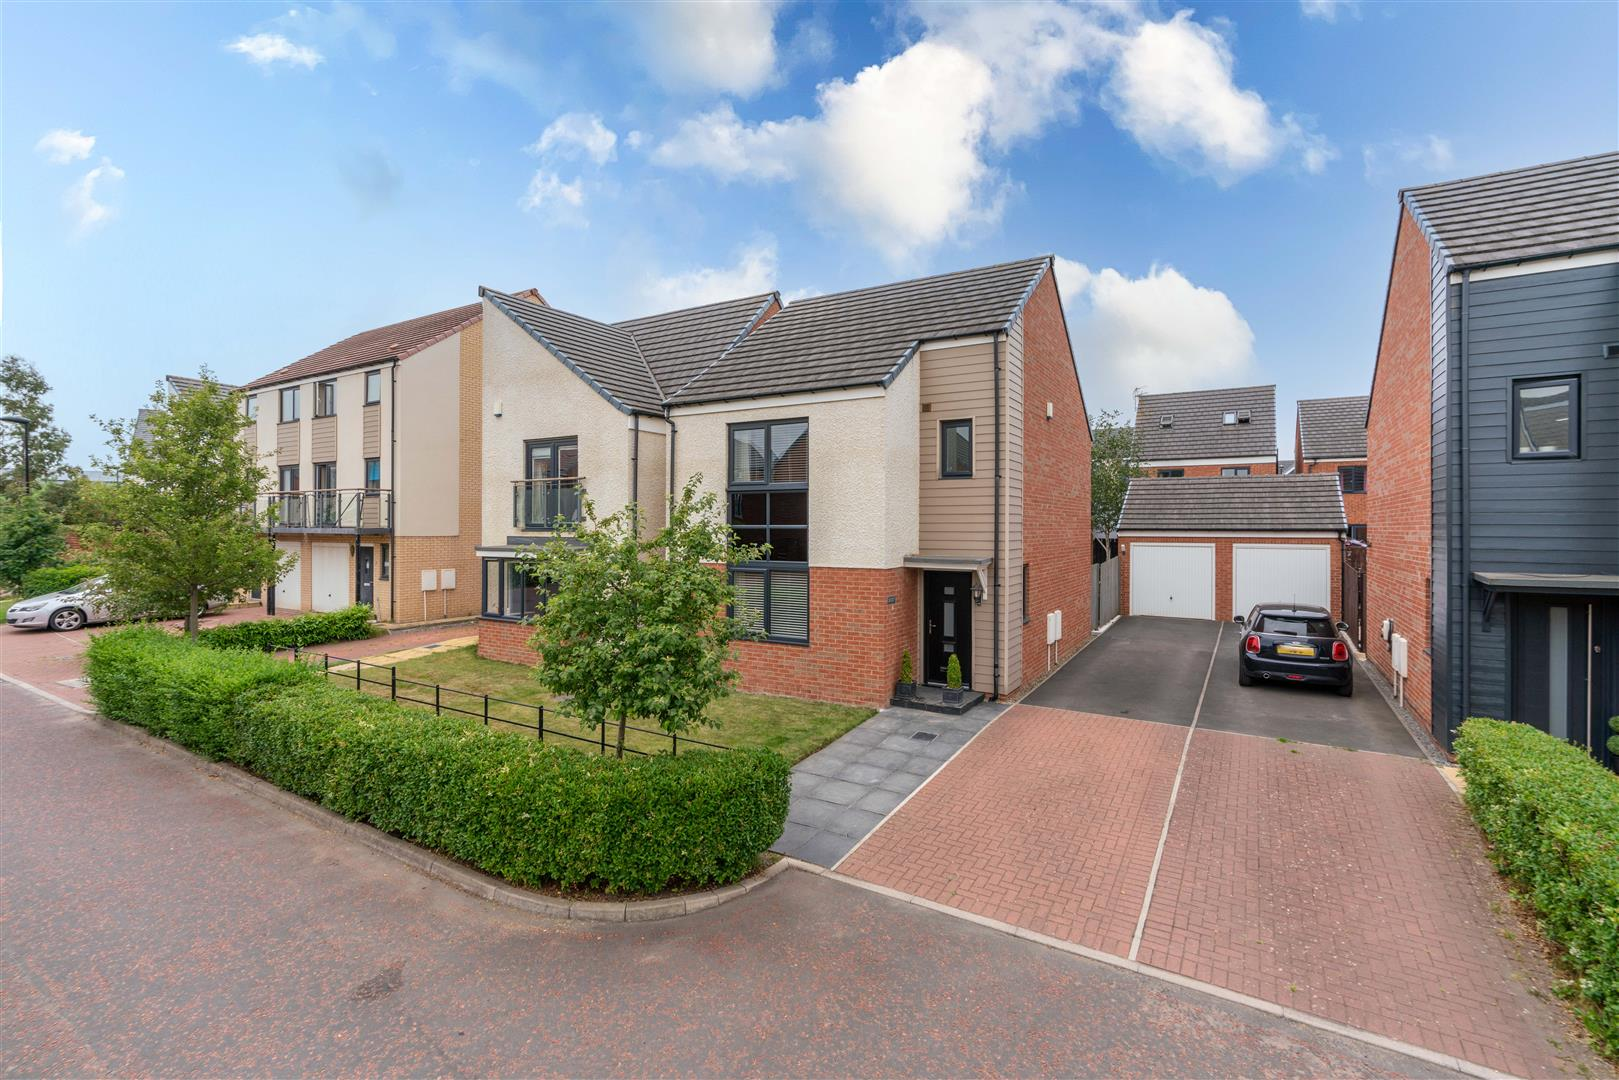 3 bed detached house for sale in Bowden Close, Newcastle Upon Tyne, NE13